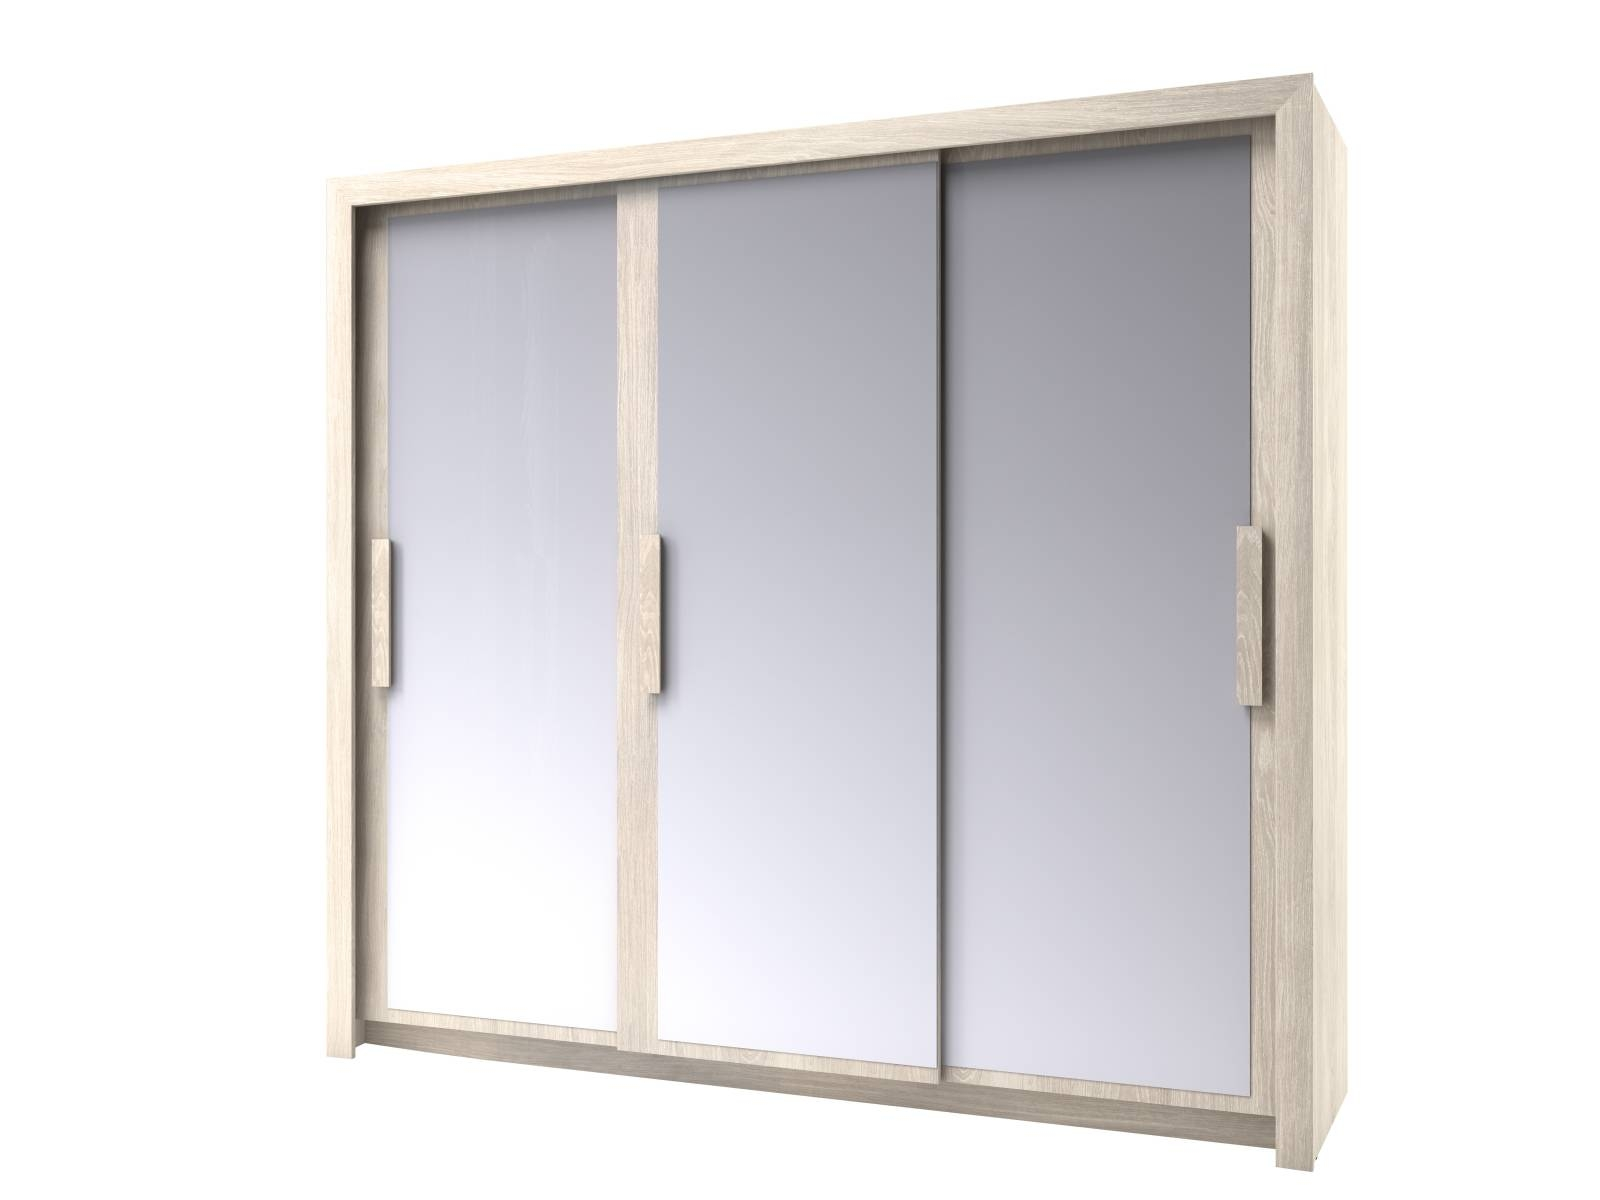 Chenin 3 Door Mirrored Wardrobe (Light Oak) | All Ranges | Cousins inside 3 Door Mirrored Wardrobes (Image 6 of 15)